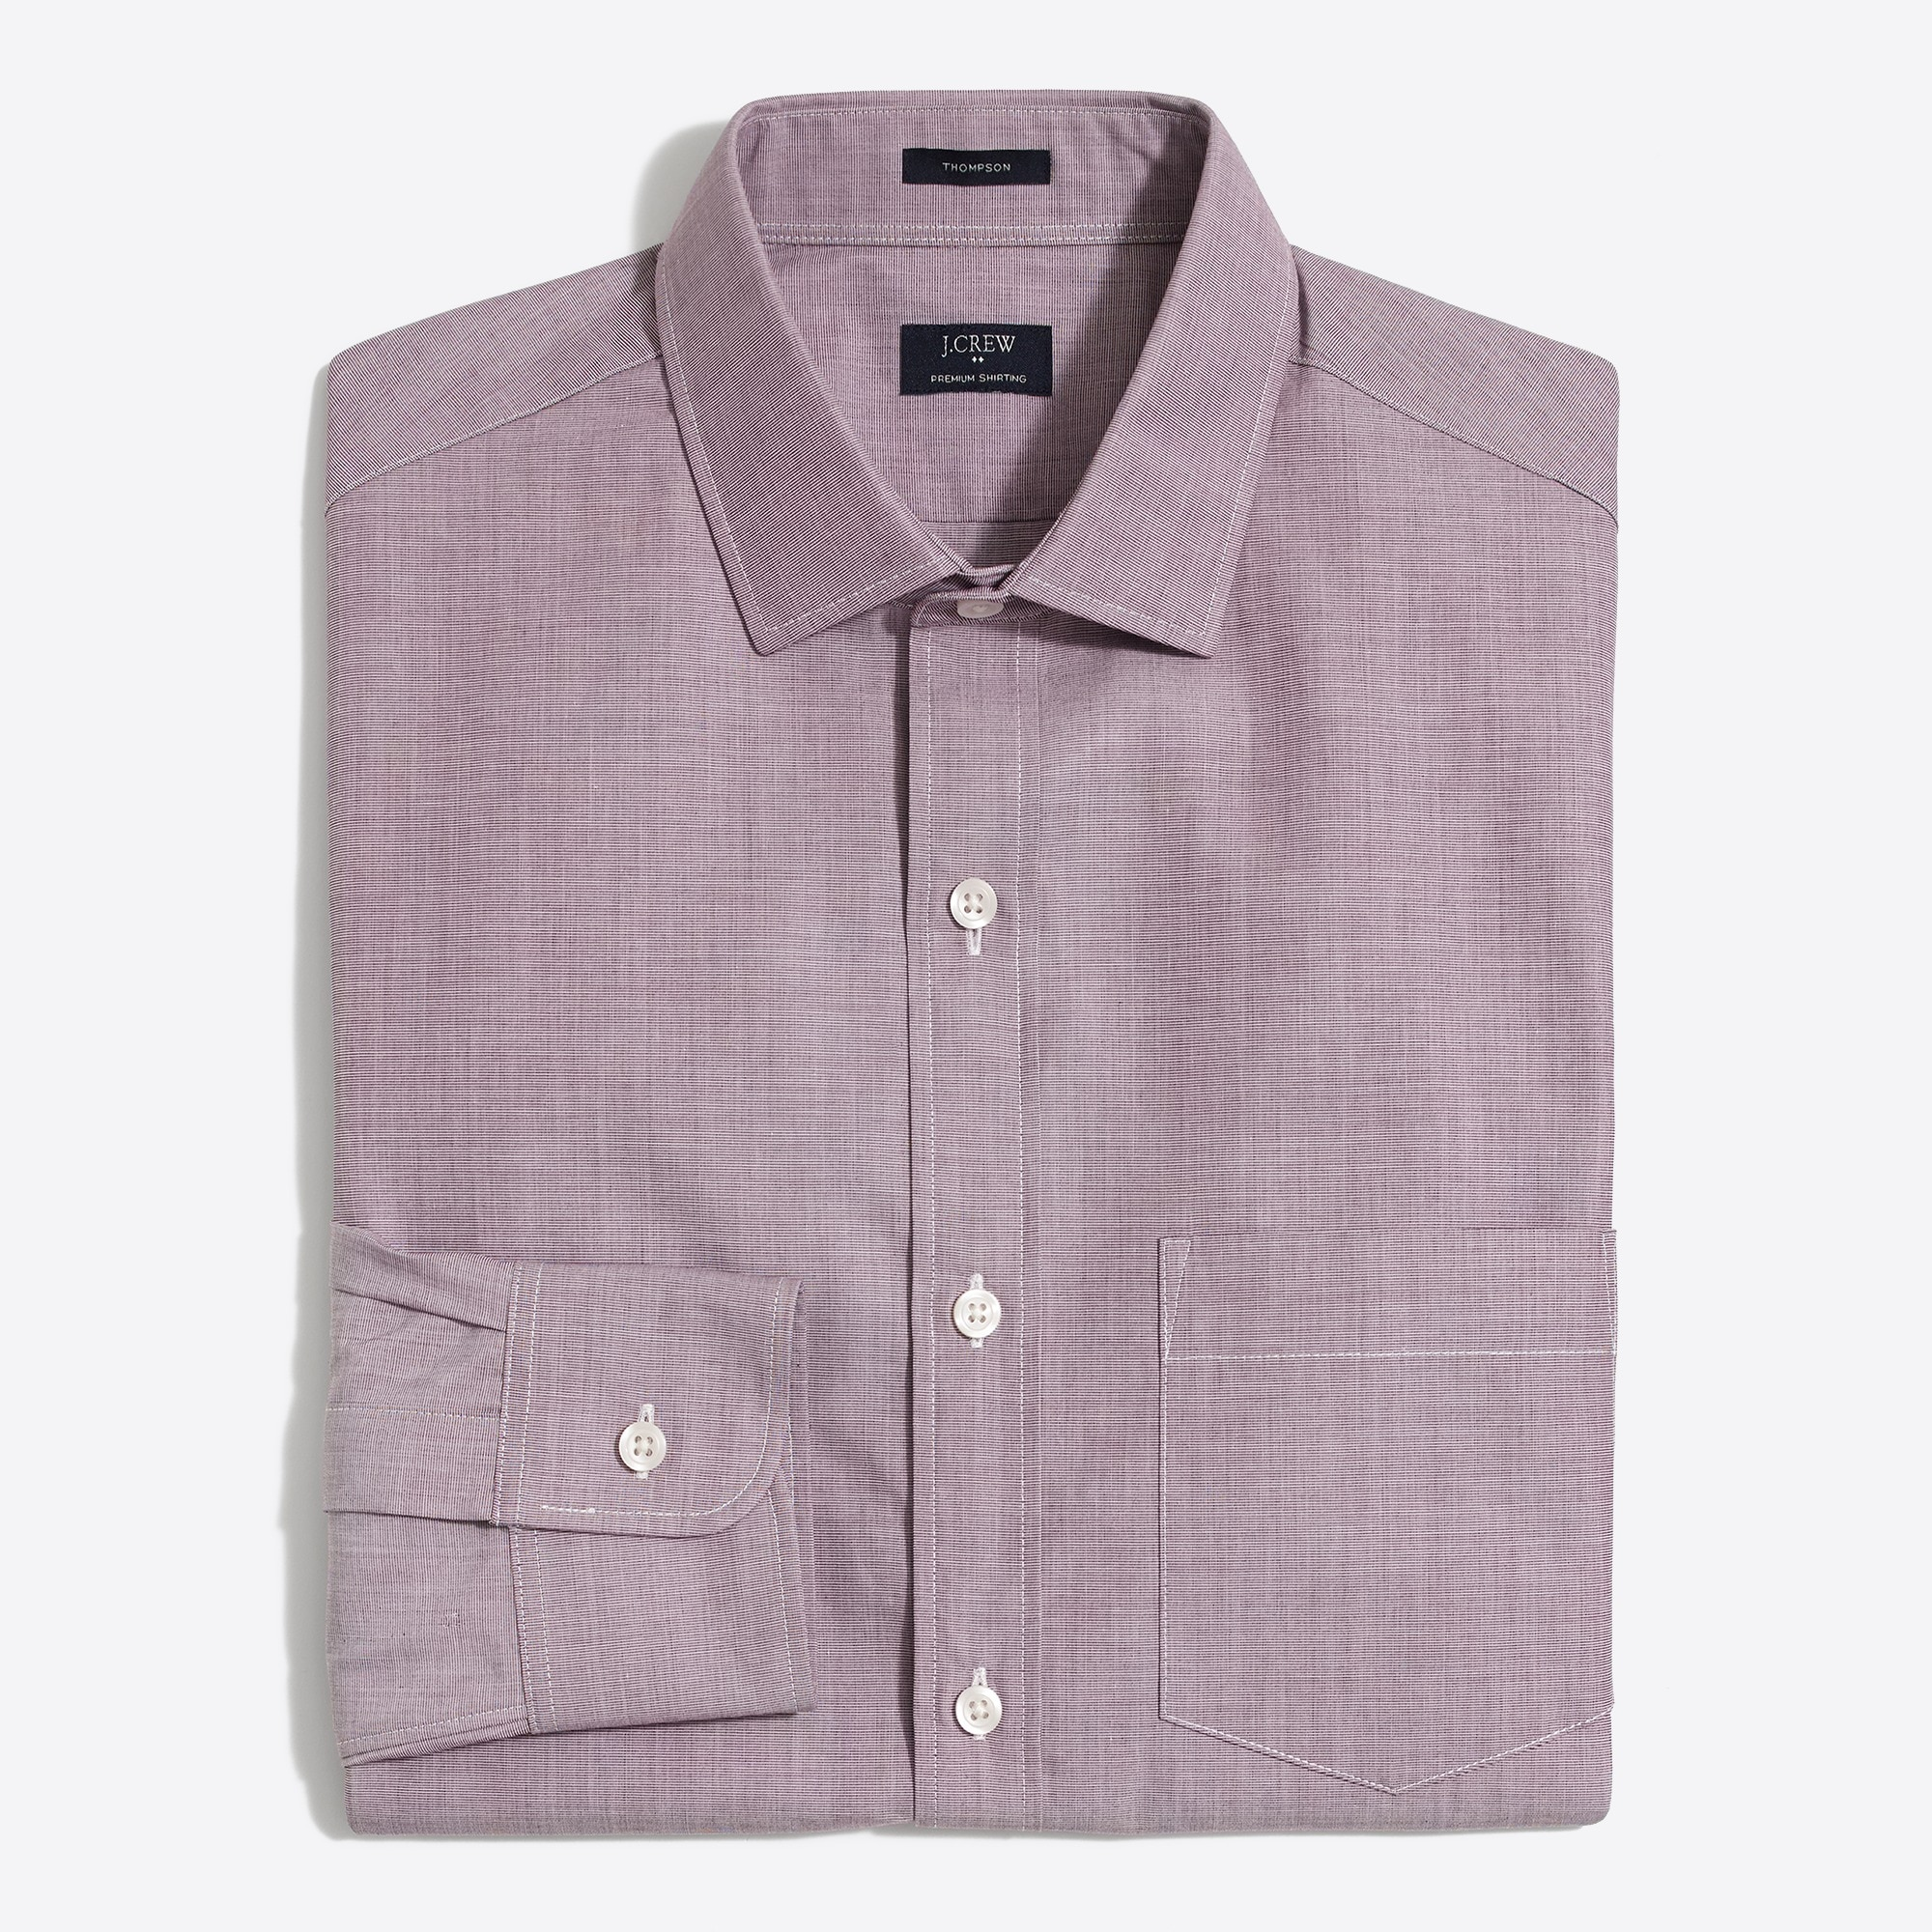 thompson dress shirt in end-on-end : factorymen classic dress shirts